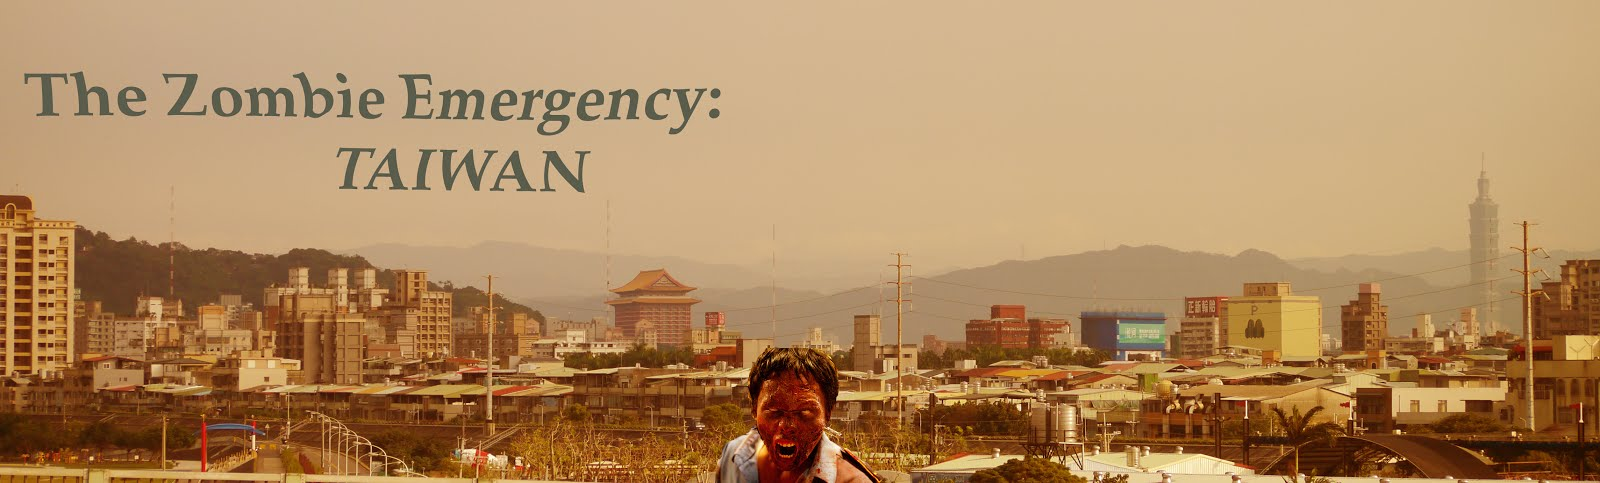 The Zombie Emergency: Taiwan